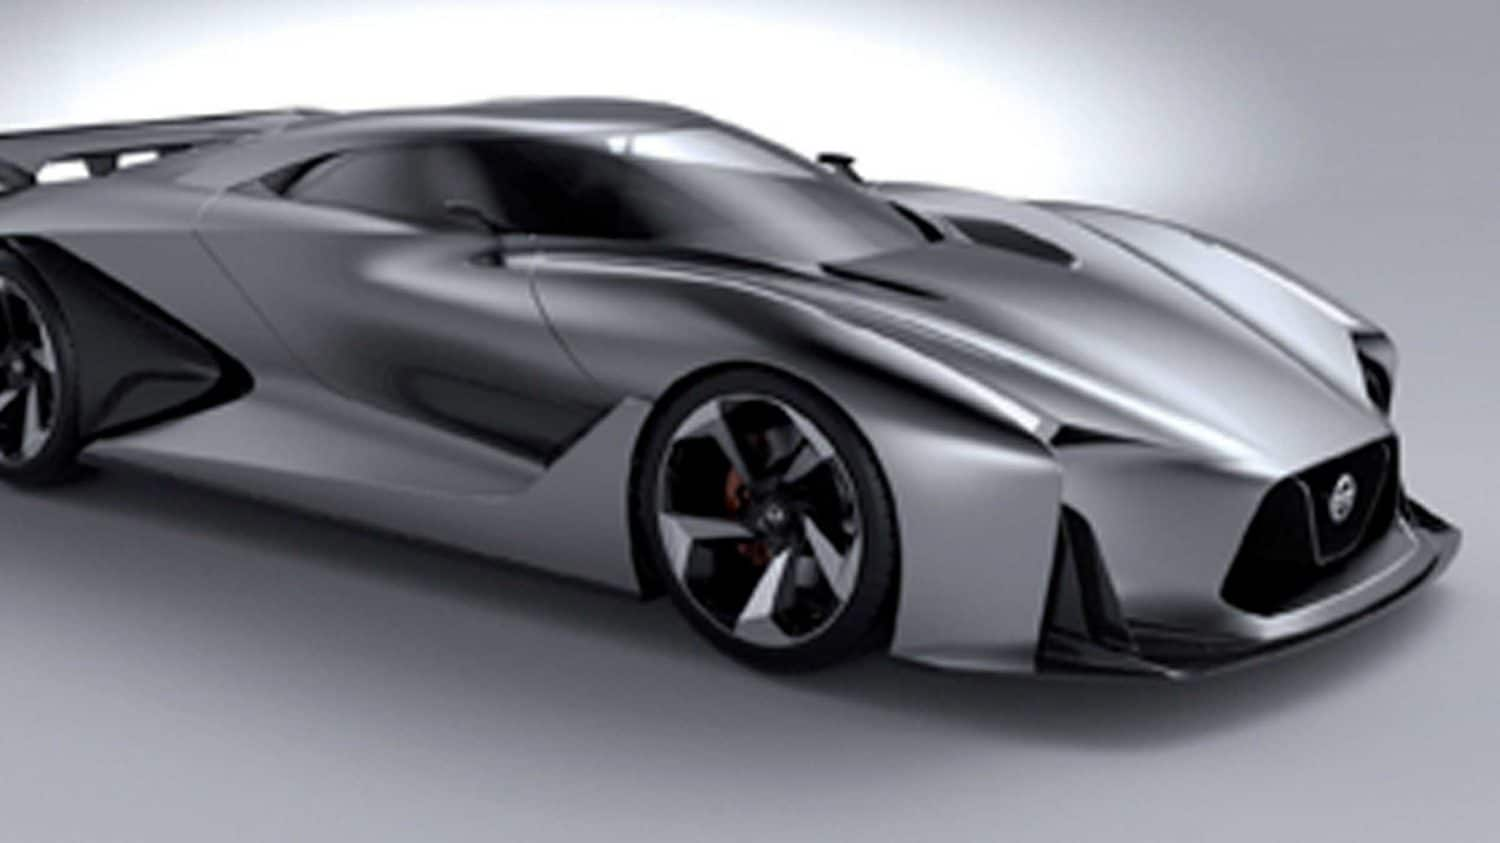 14 Concept of 2020 Nissan Model by 2020 Nissan